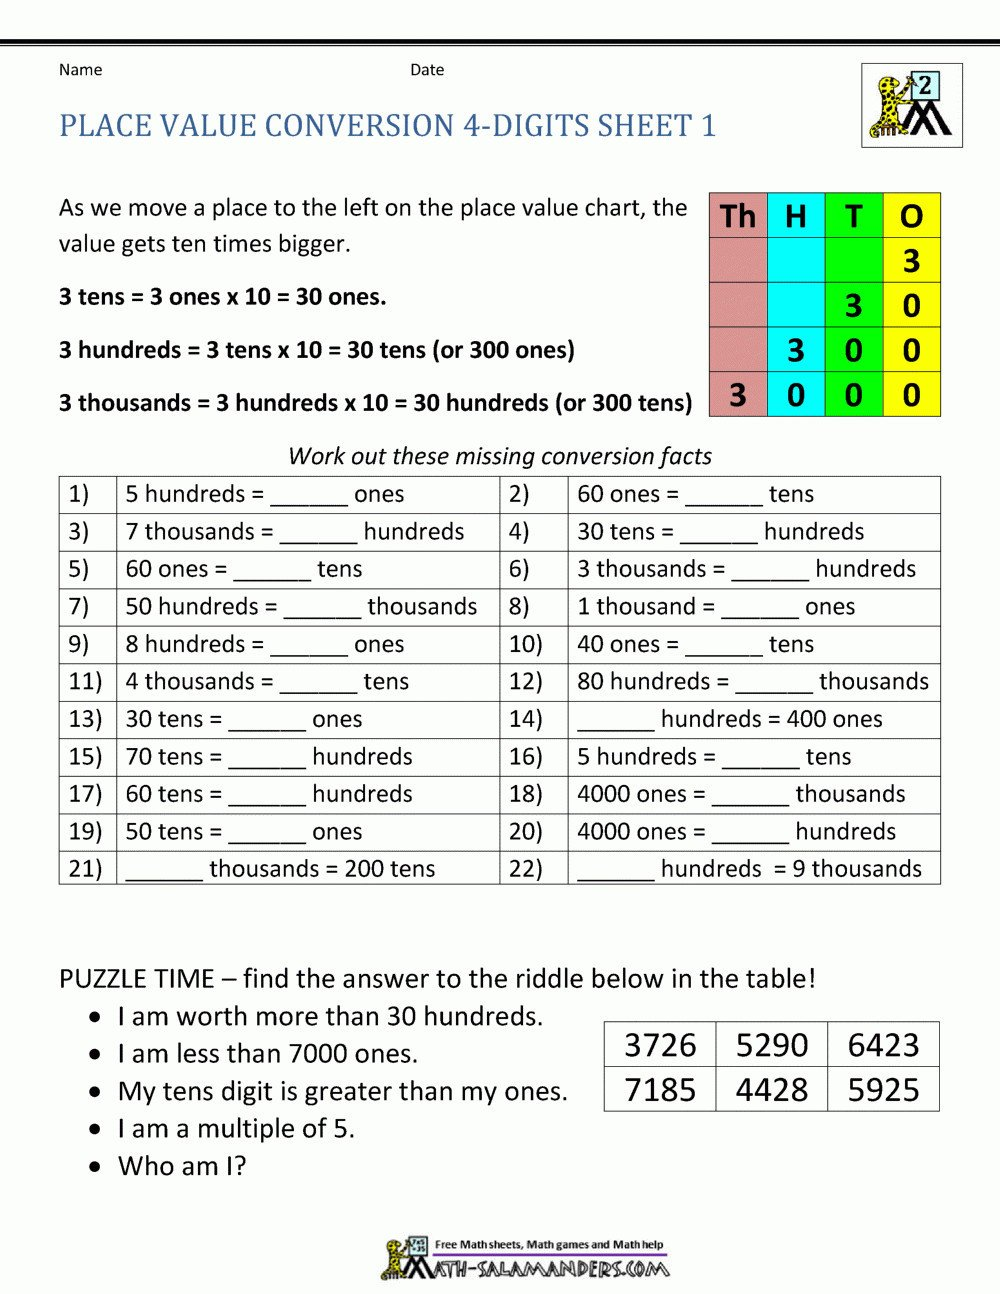 free math worksheets third grade 3 place value and rounding missing place value 3 digit number